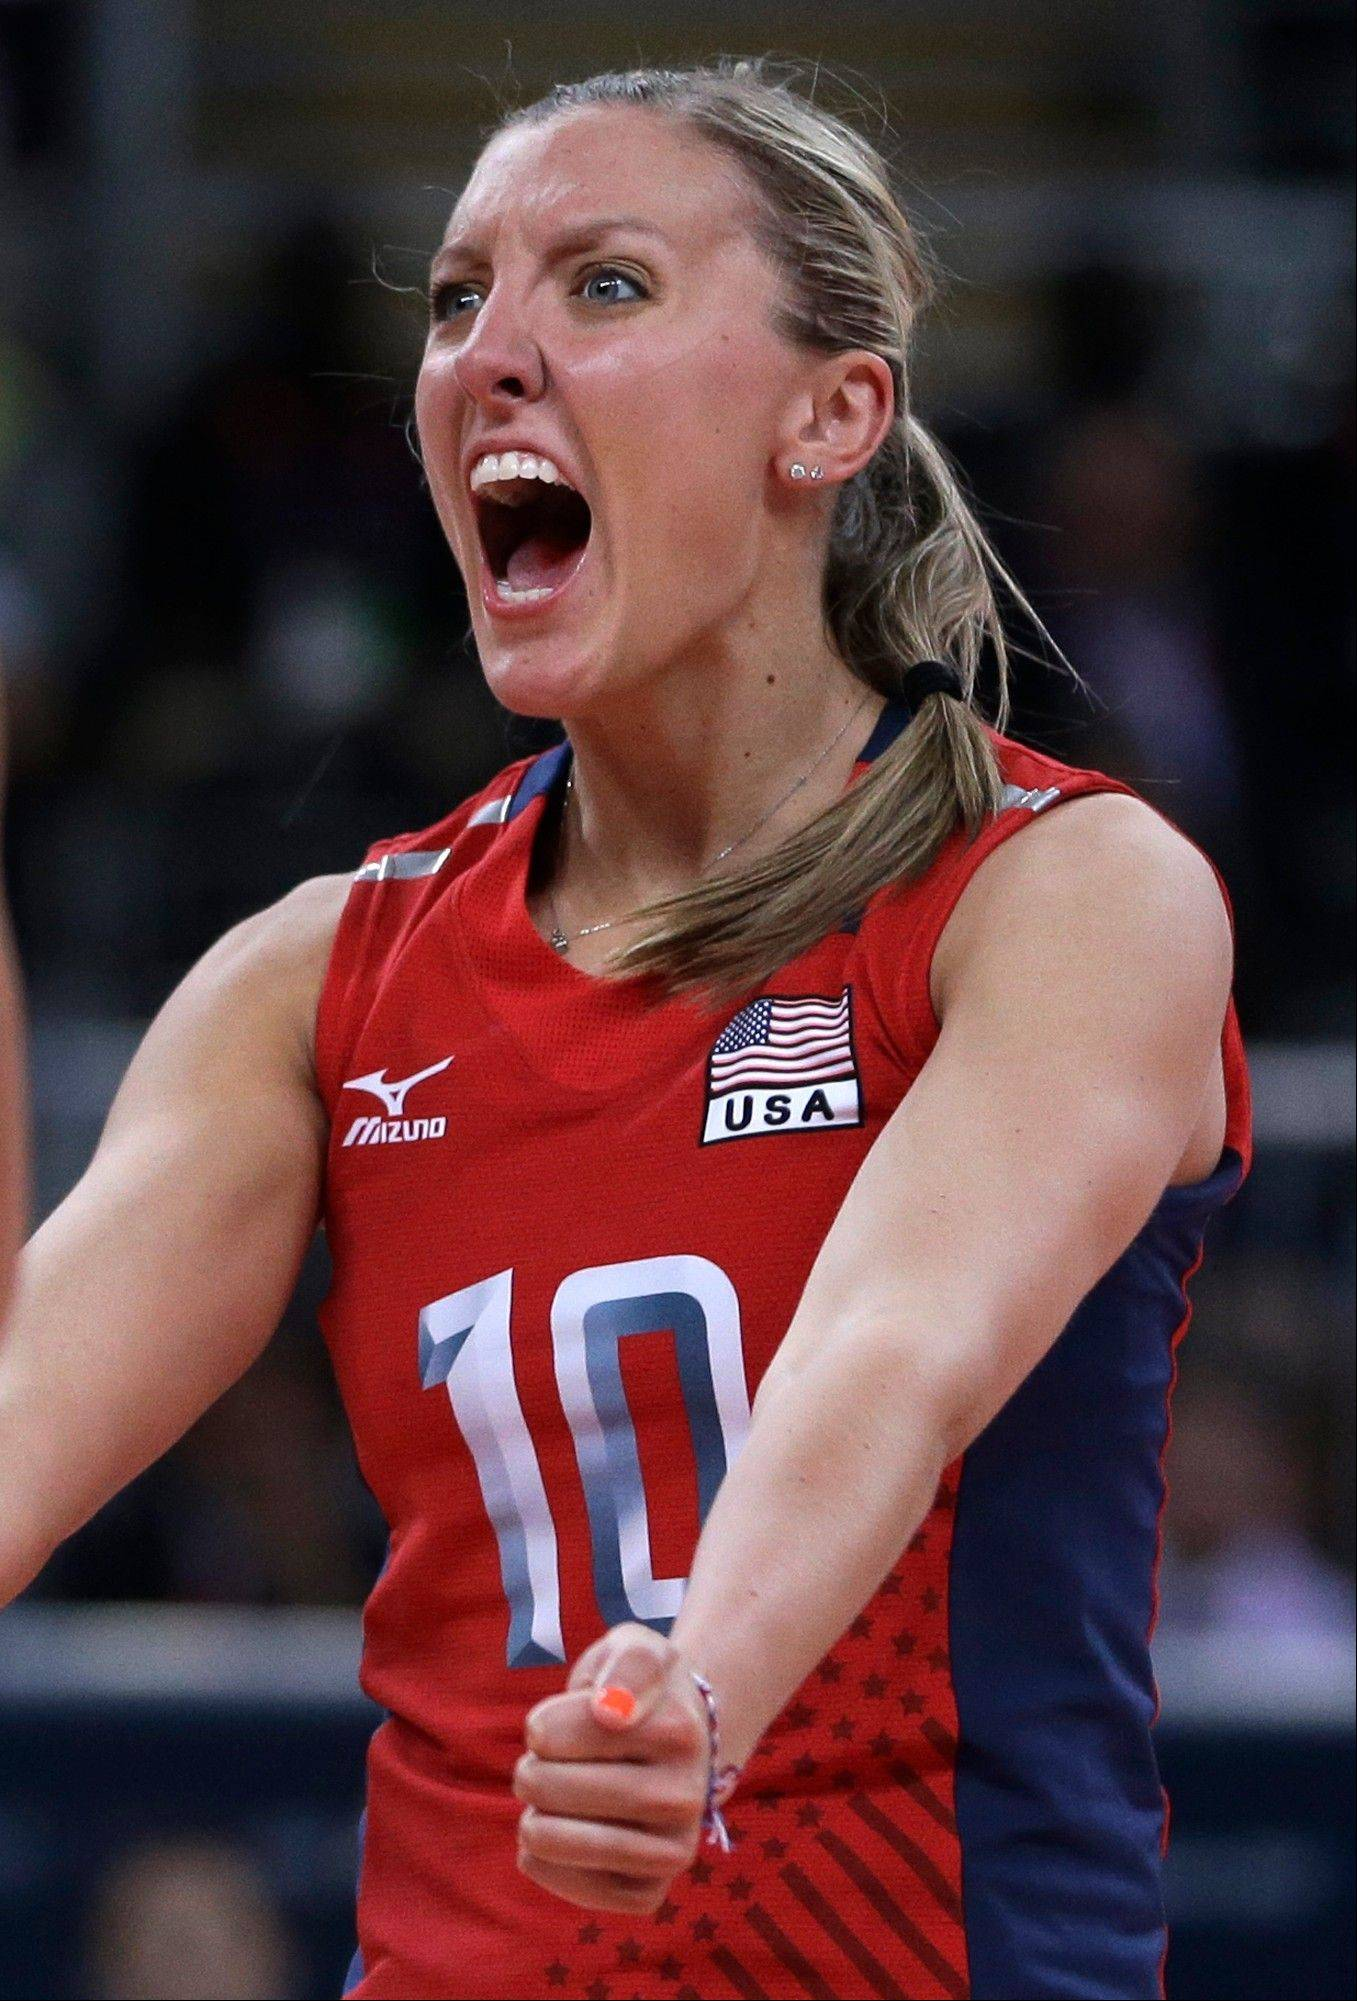 The United States� Jordan Larson celebrates during Monday�s volleyball match against Brazil at the London Olympics. Larson had 18 points for the top-ranked Americans.